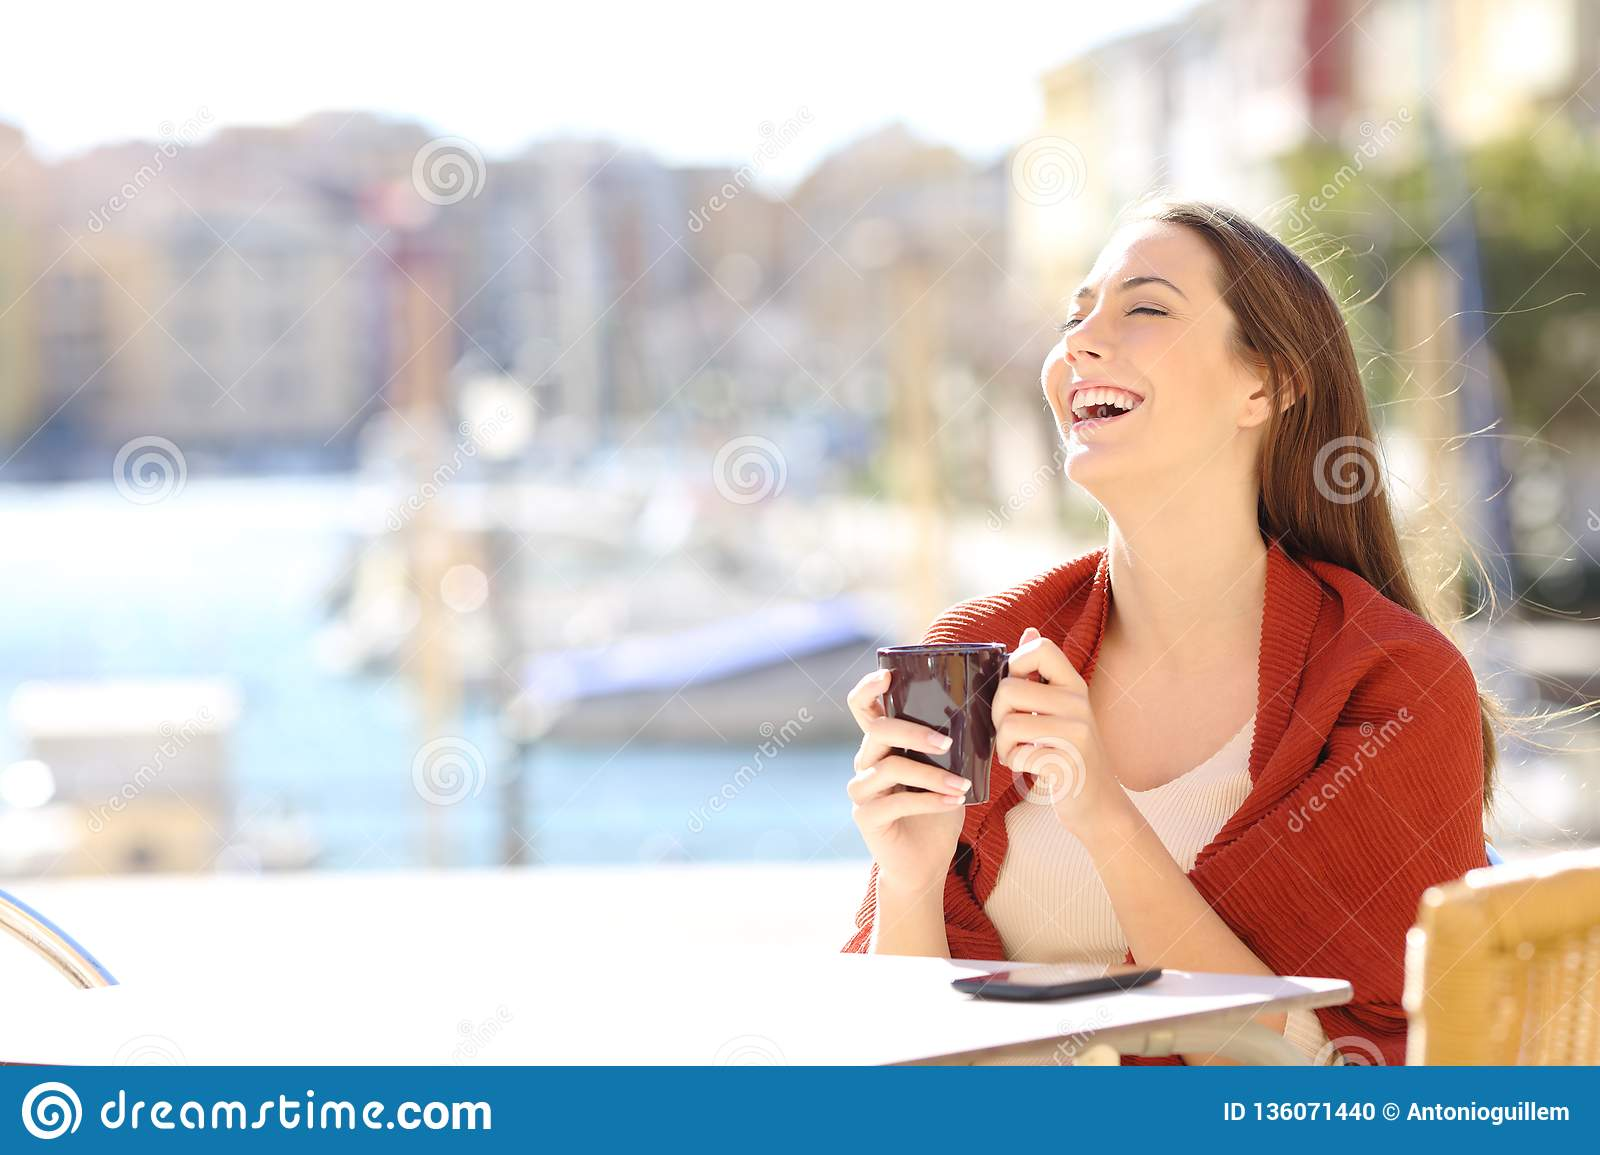 Happy woman in a coffee shop enjoying free time